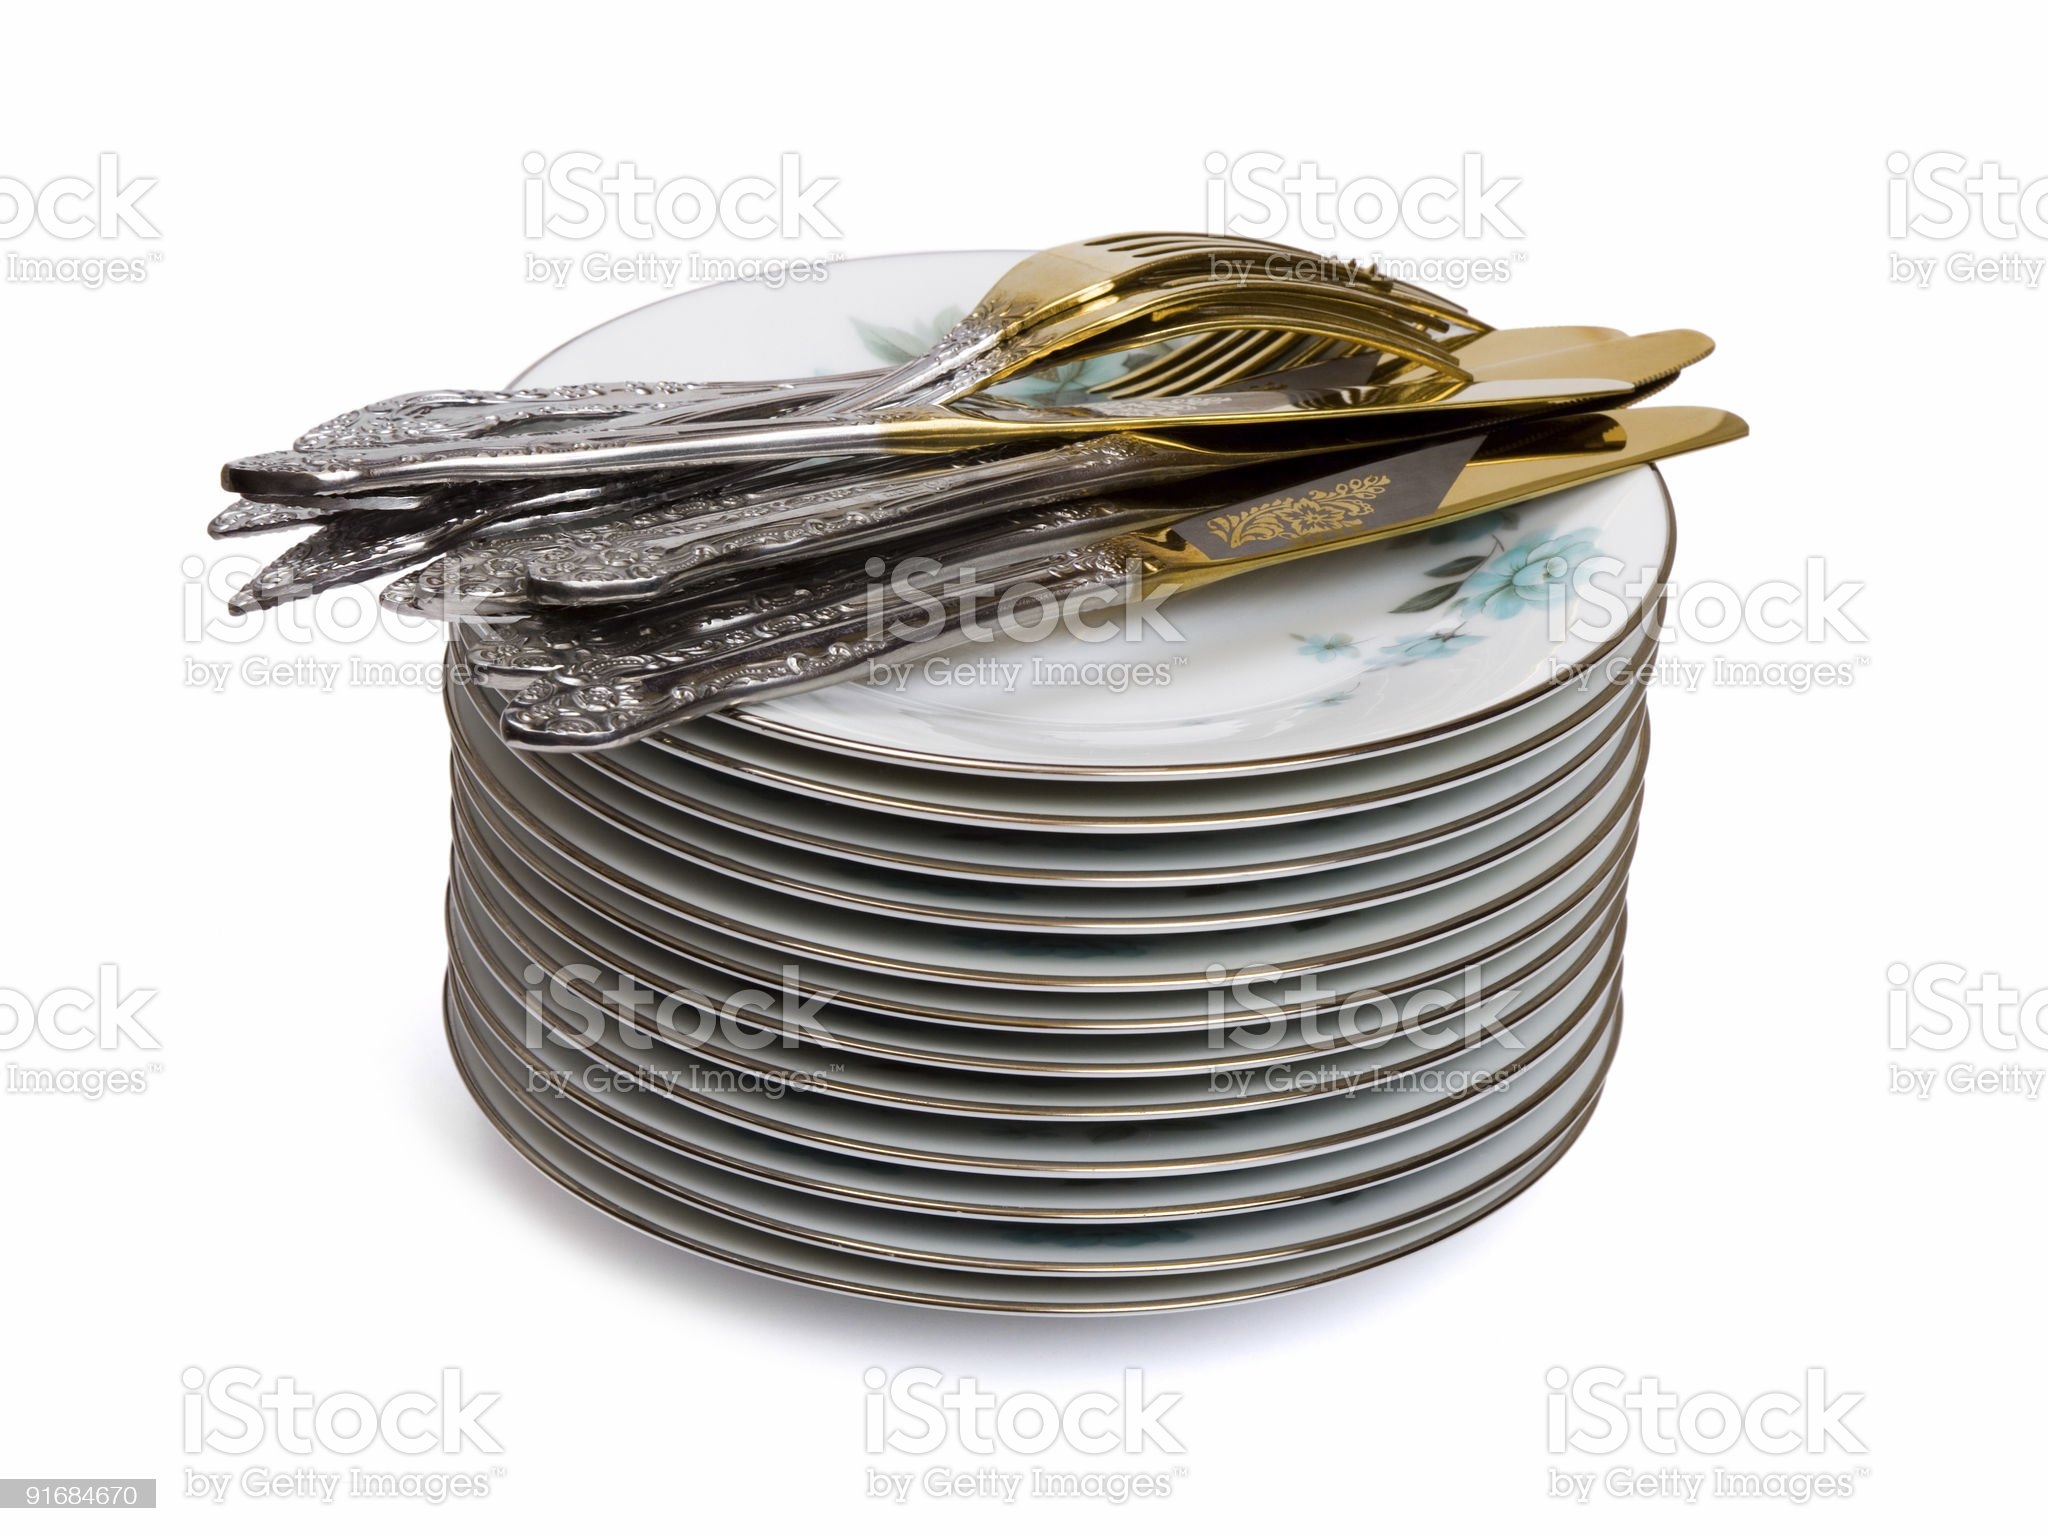 Stack of dishware royalty-free stock photo